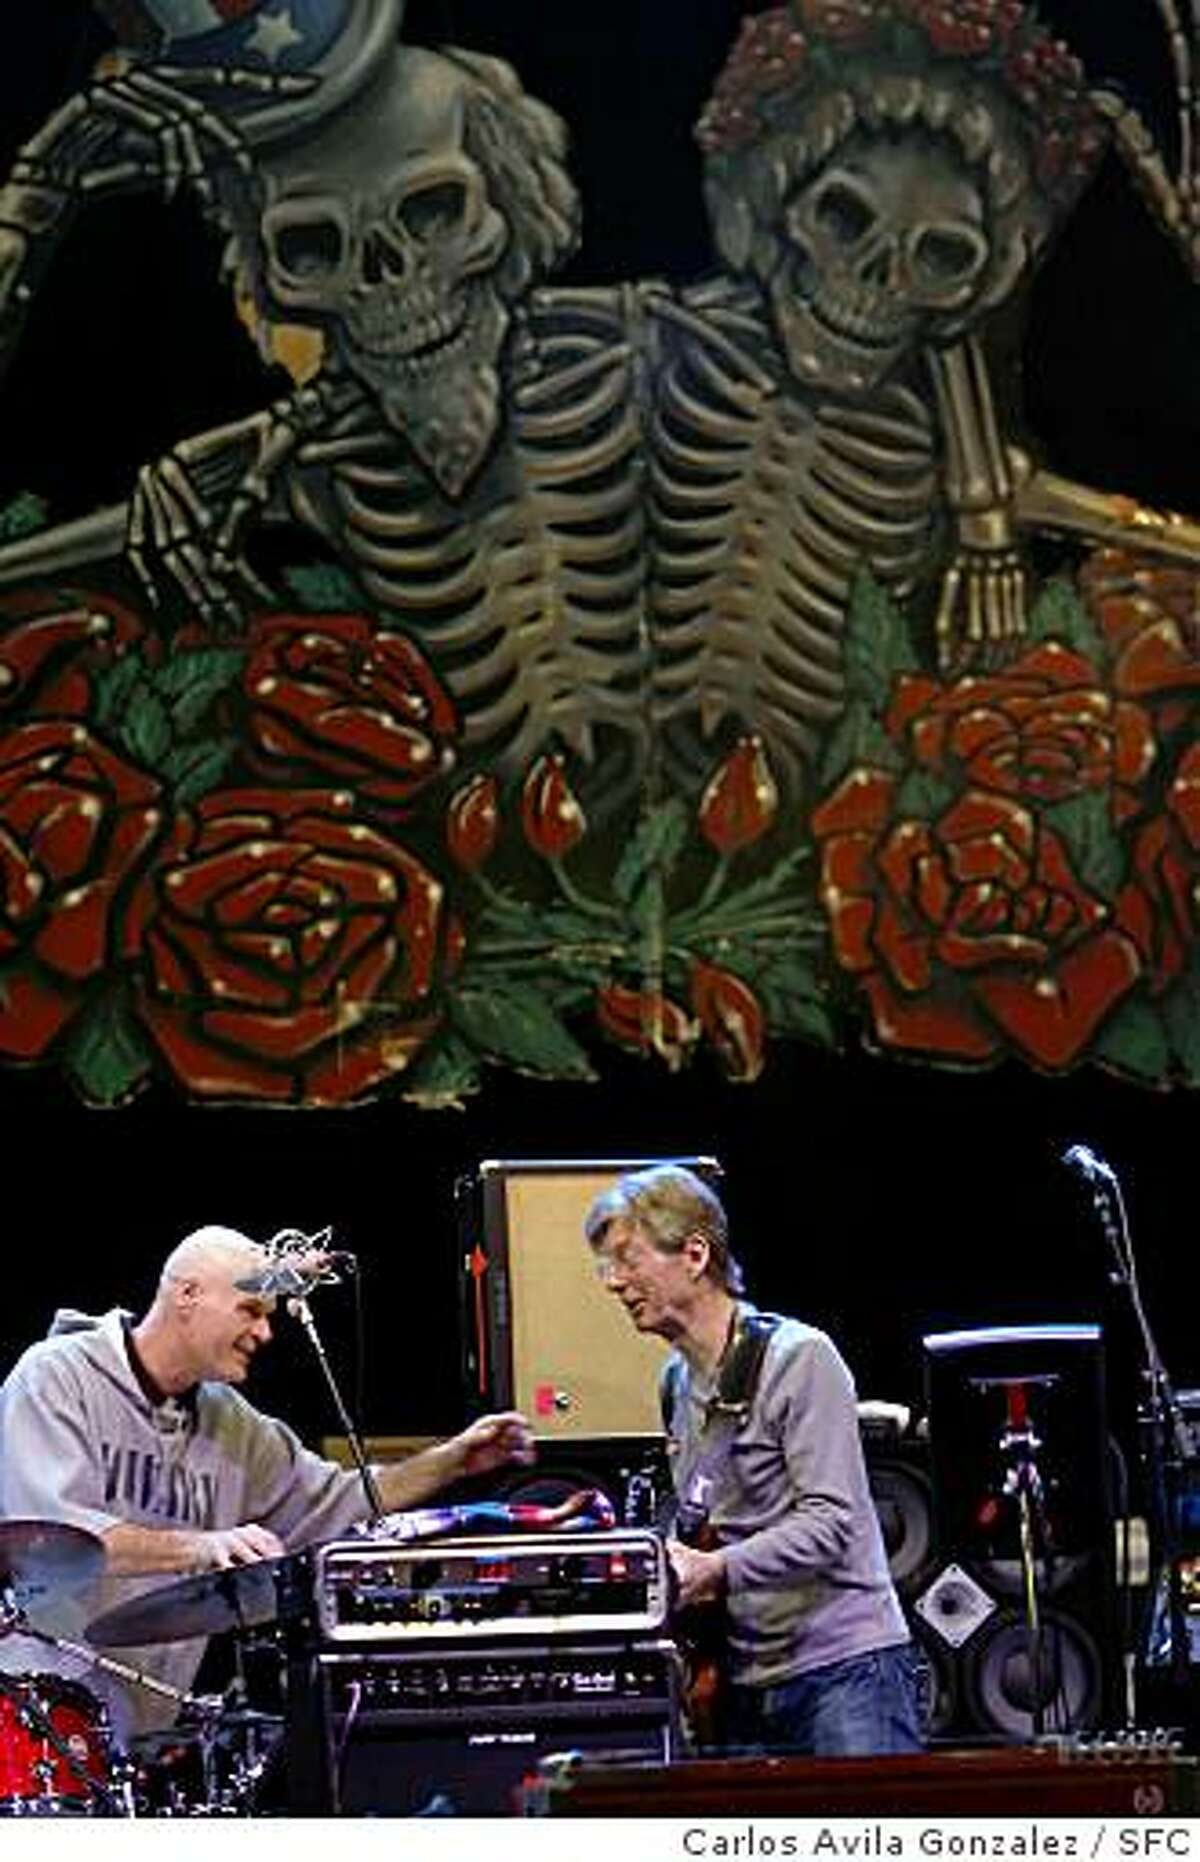 Phil Lesh, right, on stage during a sound check prior to a benefit show for presidential candidate, Barack Obama at the Warfield Theater in San Francisco, Ca., on Monday, February 4, 2008. Bob Weir, Phil Lesh and Mickey Hart of the Grateful Dead speak at a press conference backstage at the Warfield Theater before a rally for Barack Obama in San Francisco, Ca., on Monday, February 4, 2008. These fellows haven't played together in four years and don't even really speak. The gig was arranged by email. Their brief performance together tonight will be widely heralded in Dead circles.Photo taken on 2/4/08, in San Francisco, CaPhoto by Carlos Avila Gonzalez/The San Francisco Chronicle